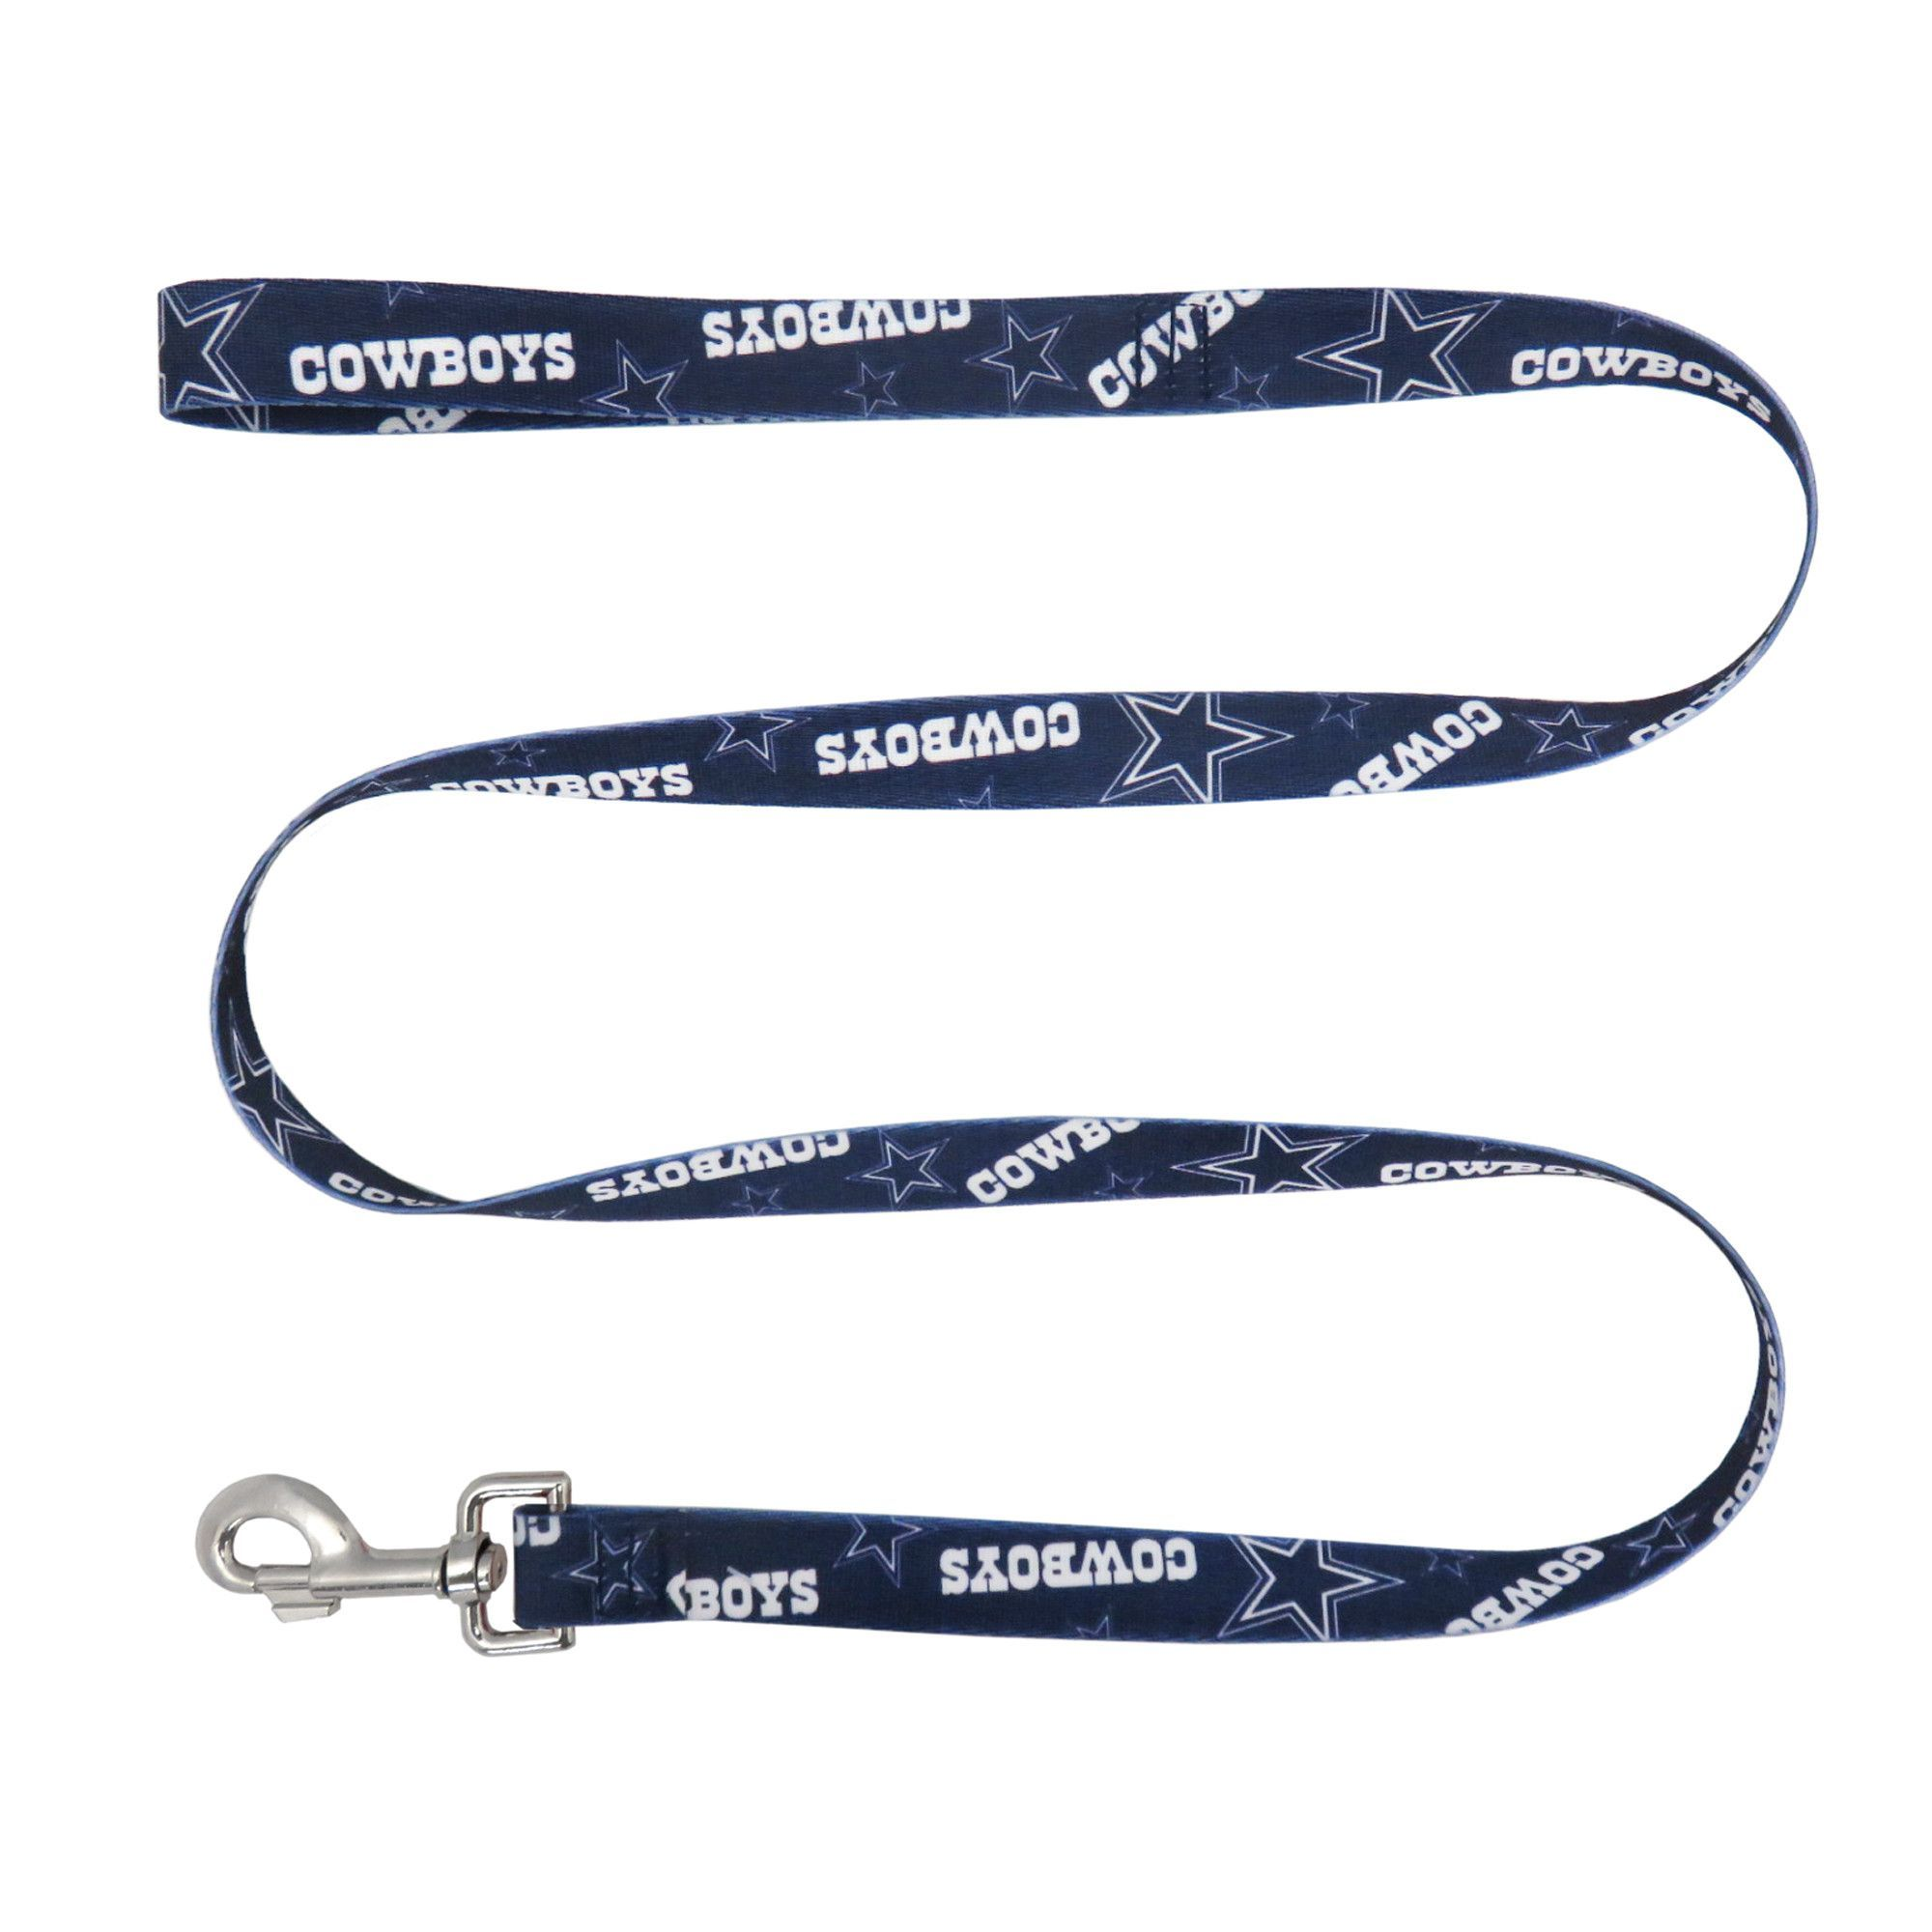 de2d301b6 Dallas Cowboys Dog Leash 1x60 | Stuff for my future pet | Cowboys ...